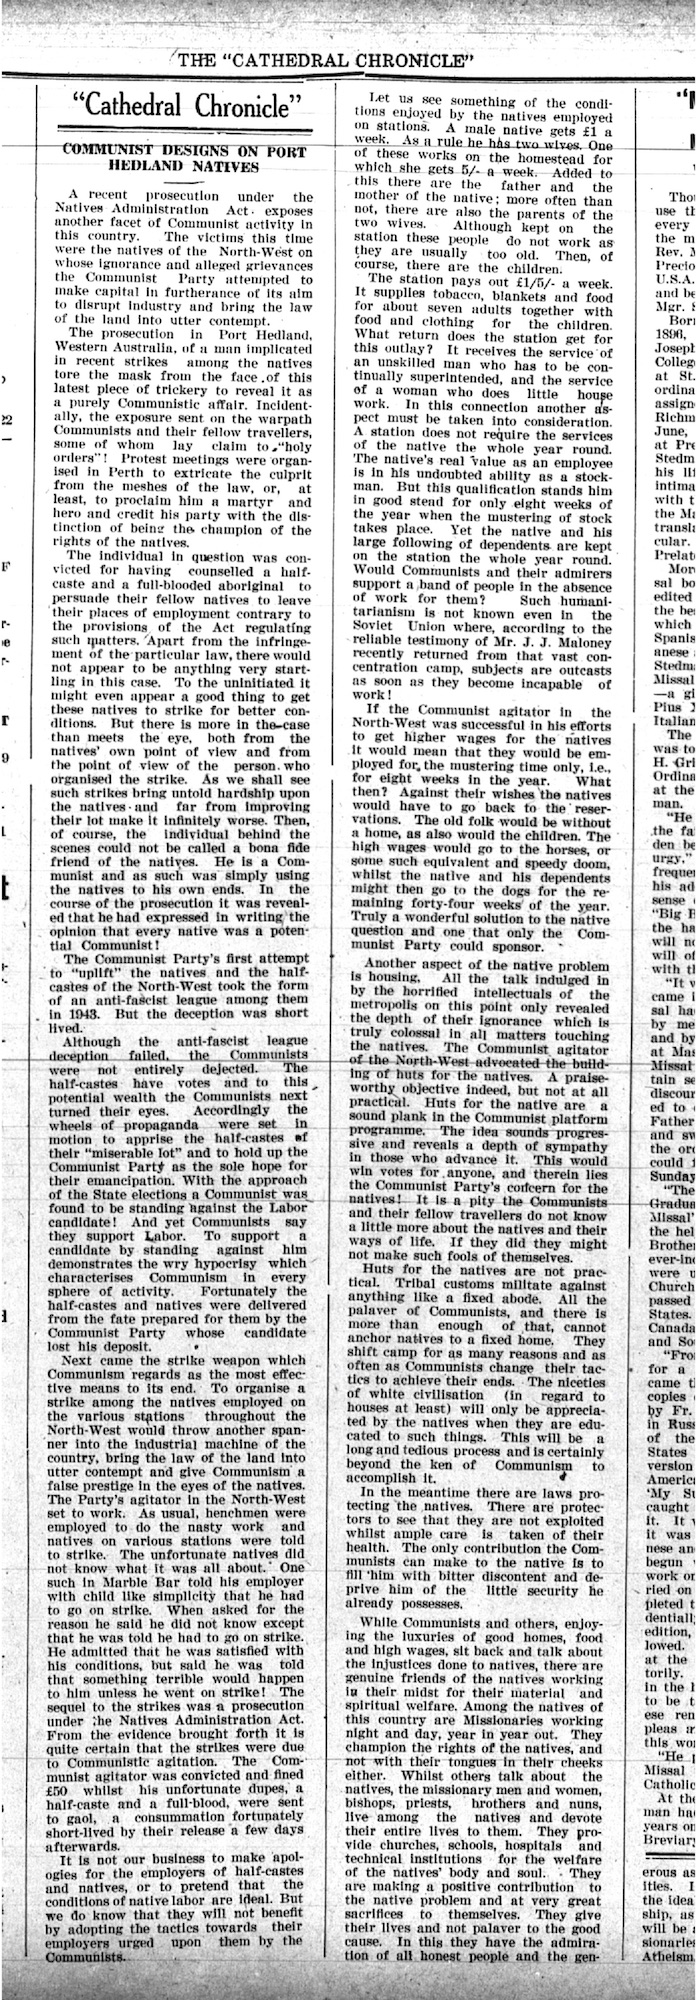 Cathedral Chronicle, August 1946, 'Communist Designs on Port Hedland Natives.'